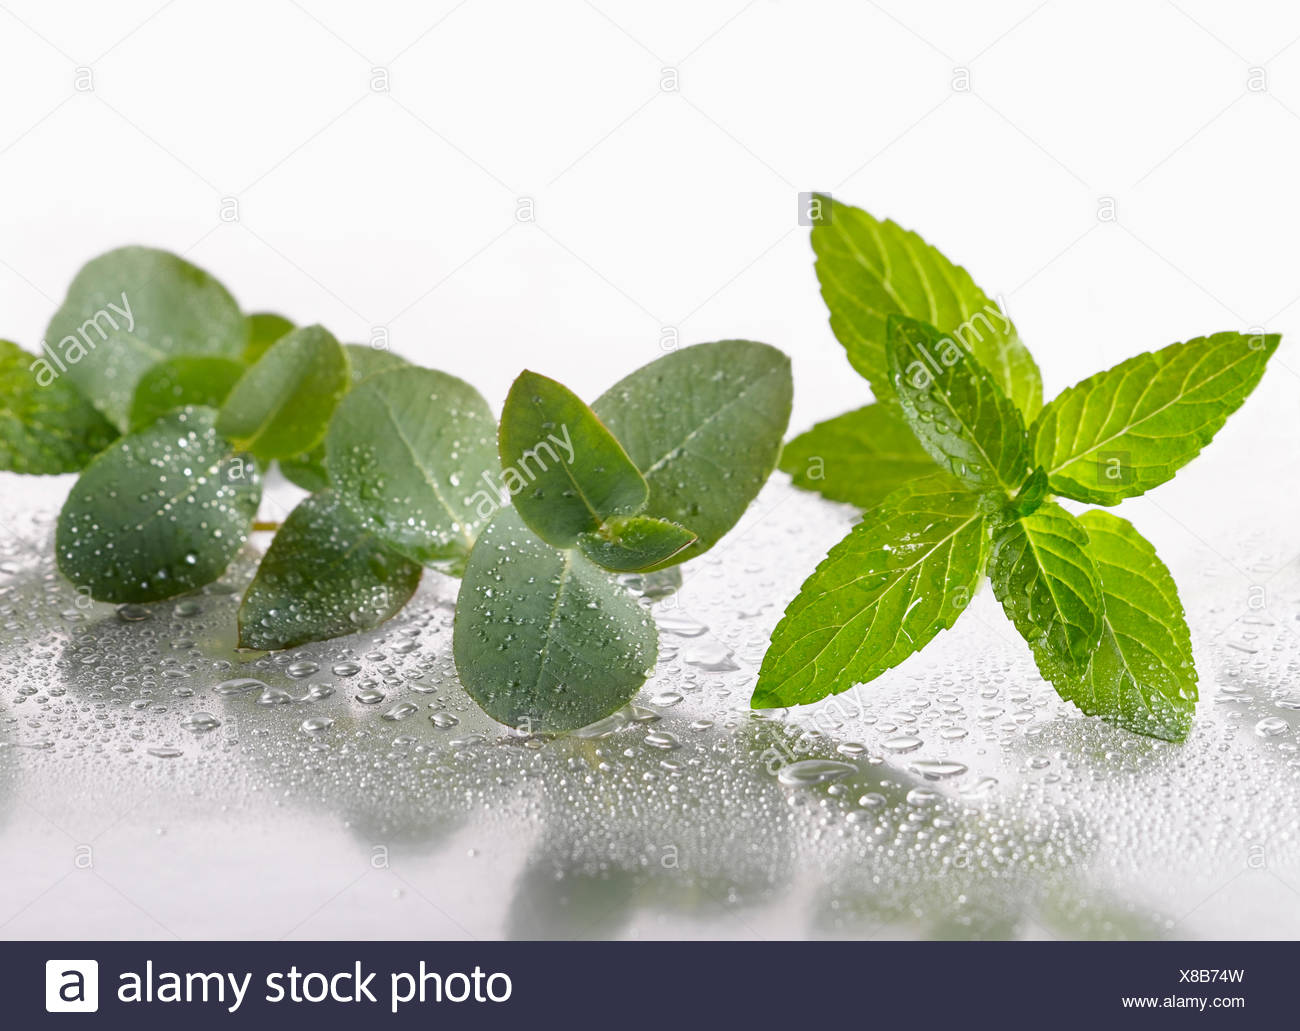 Peppermint, Mentha piperita sprig arranged with Eucalyptus globulus leaves on silver background, and spritzed with water. Selective focus. - Stock Image